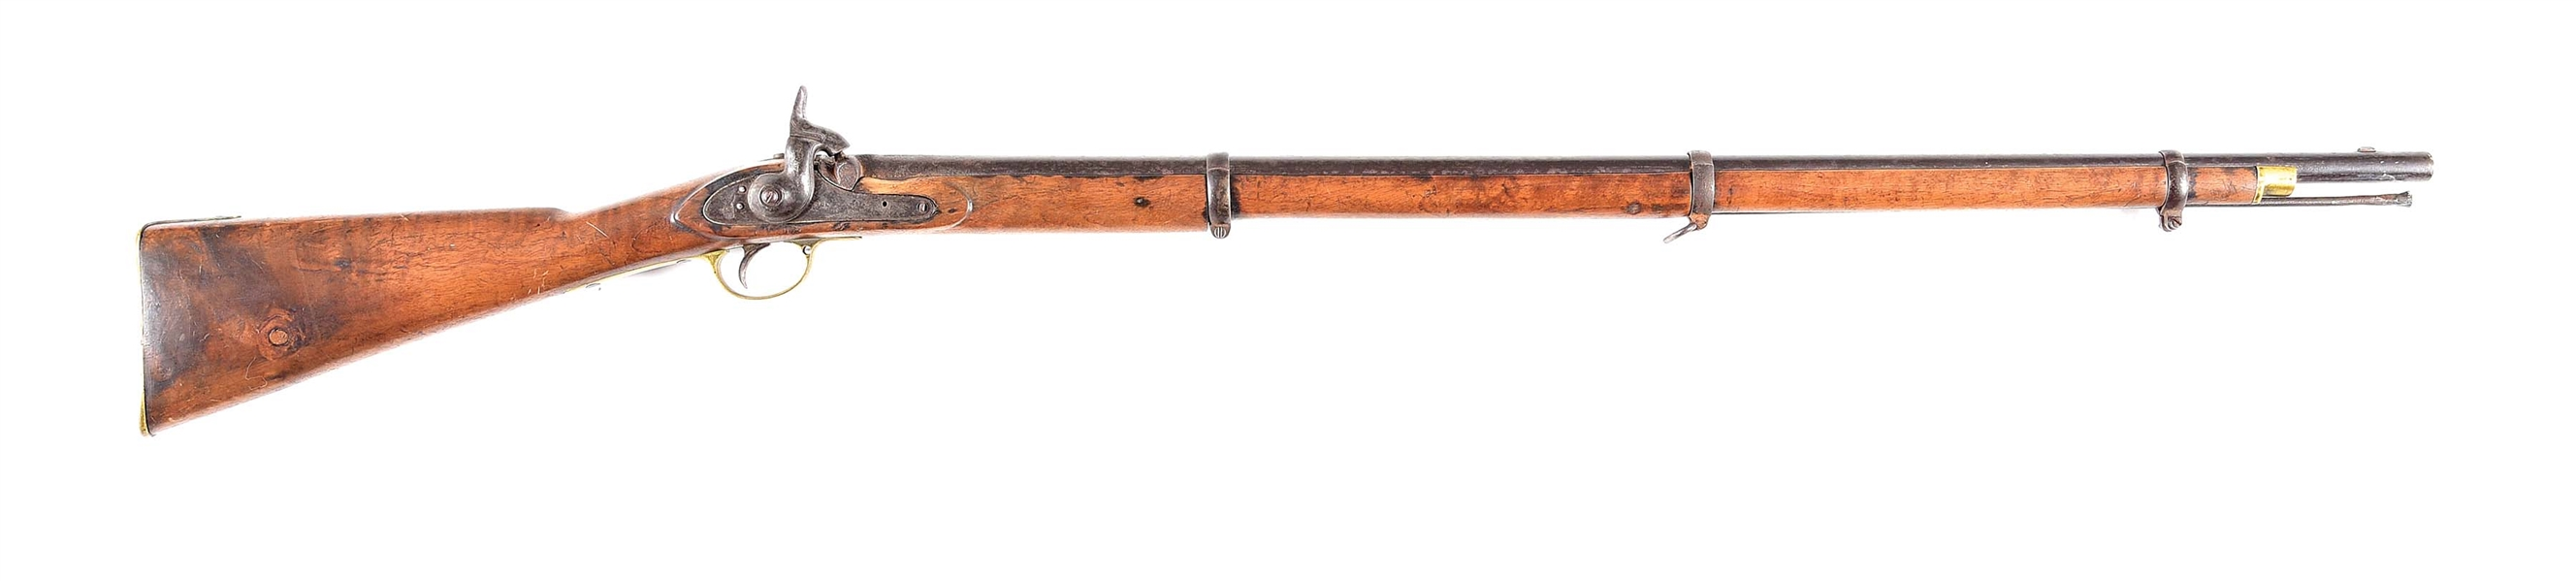 (A) MOORE AMERICAN MADE ENFIELD PERCUSSION RIFLE.